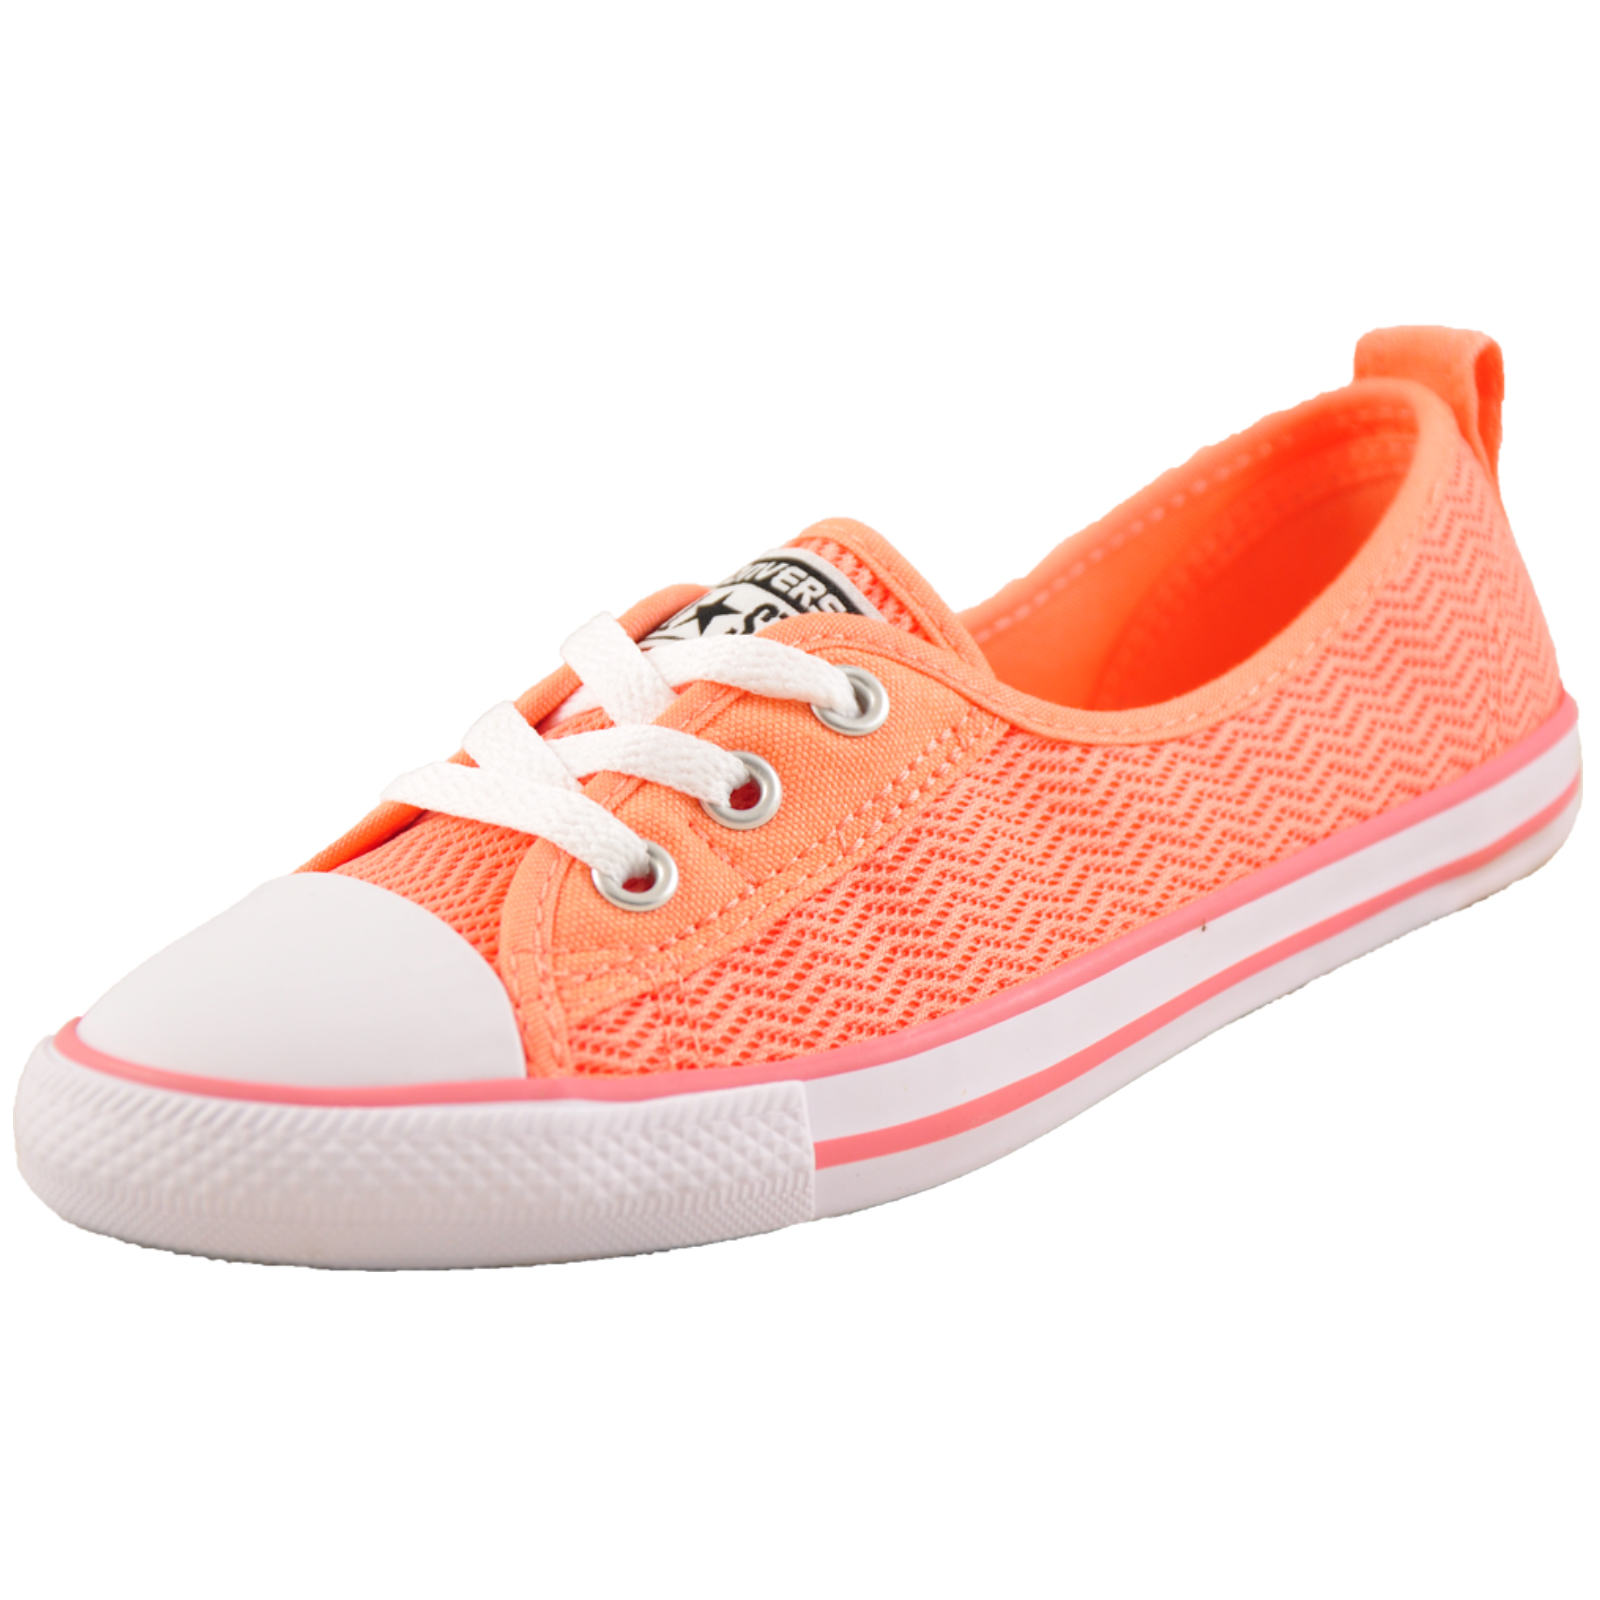 f51d8df292b8 Details about Converse Chuck Taylor All Star Ballet Women s Slip-On Casual  Plimsol Trainers